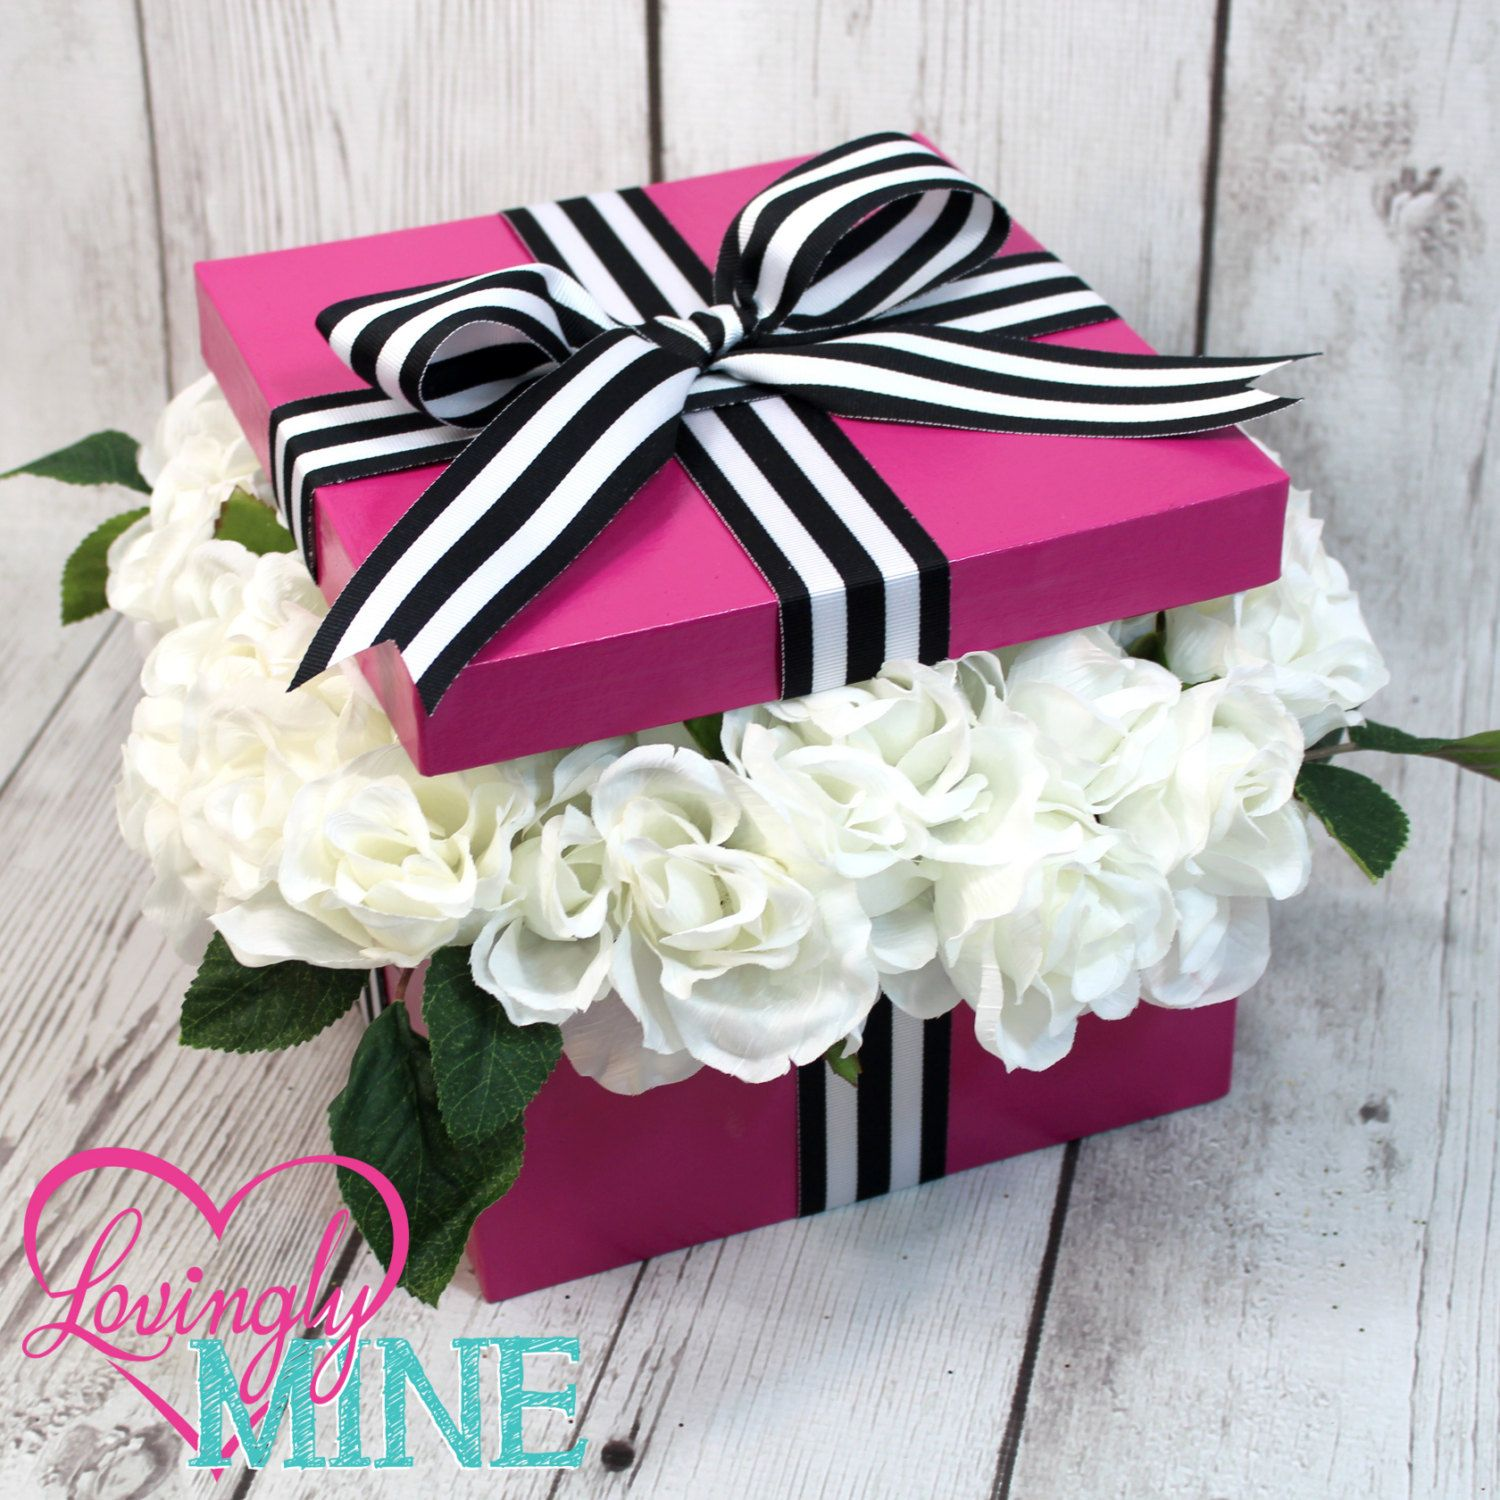 Fuchsia Black White Stripes White Faux Silk Roses Centerpiece Box Perfect For Any Event Bridal Shower Birthday Sweet Sixteen Bridal Shower Favors Pink Bridal Shower Kate Spade Bridal Shower